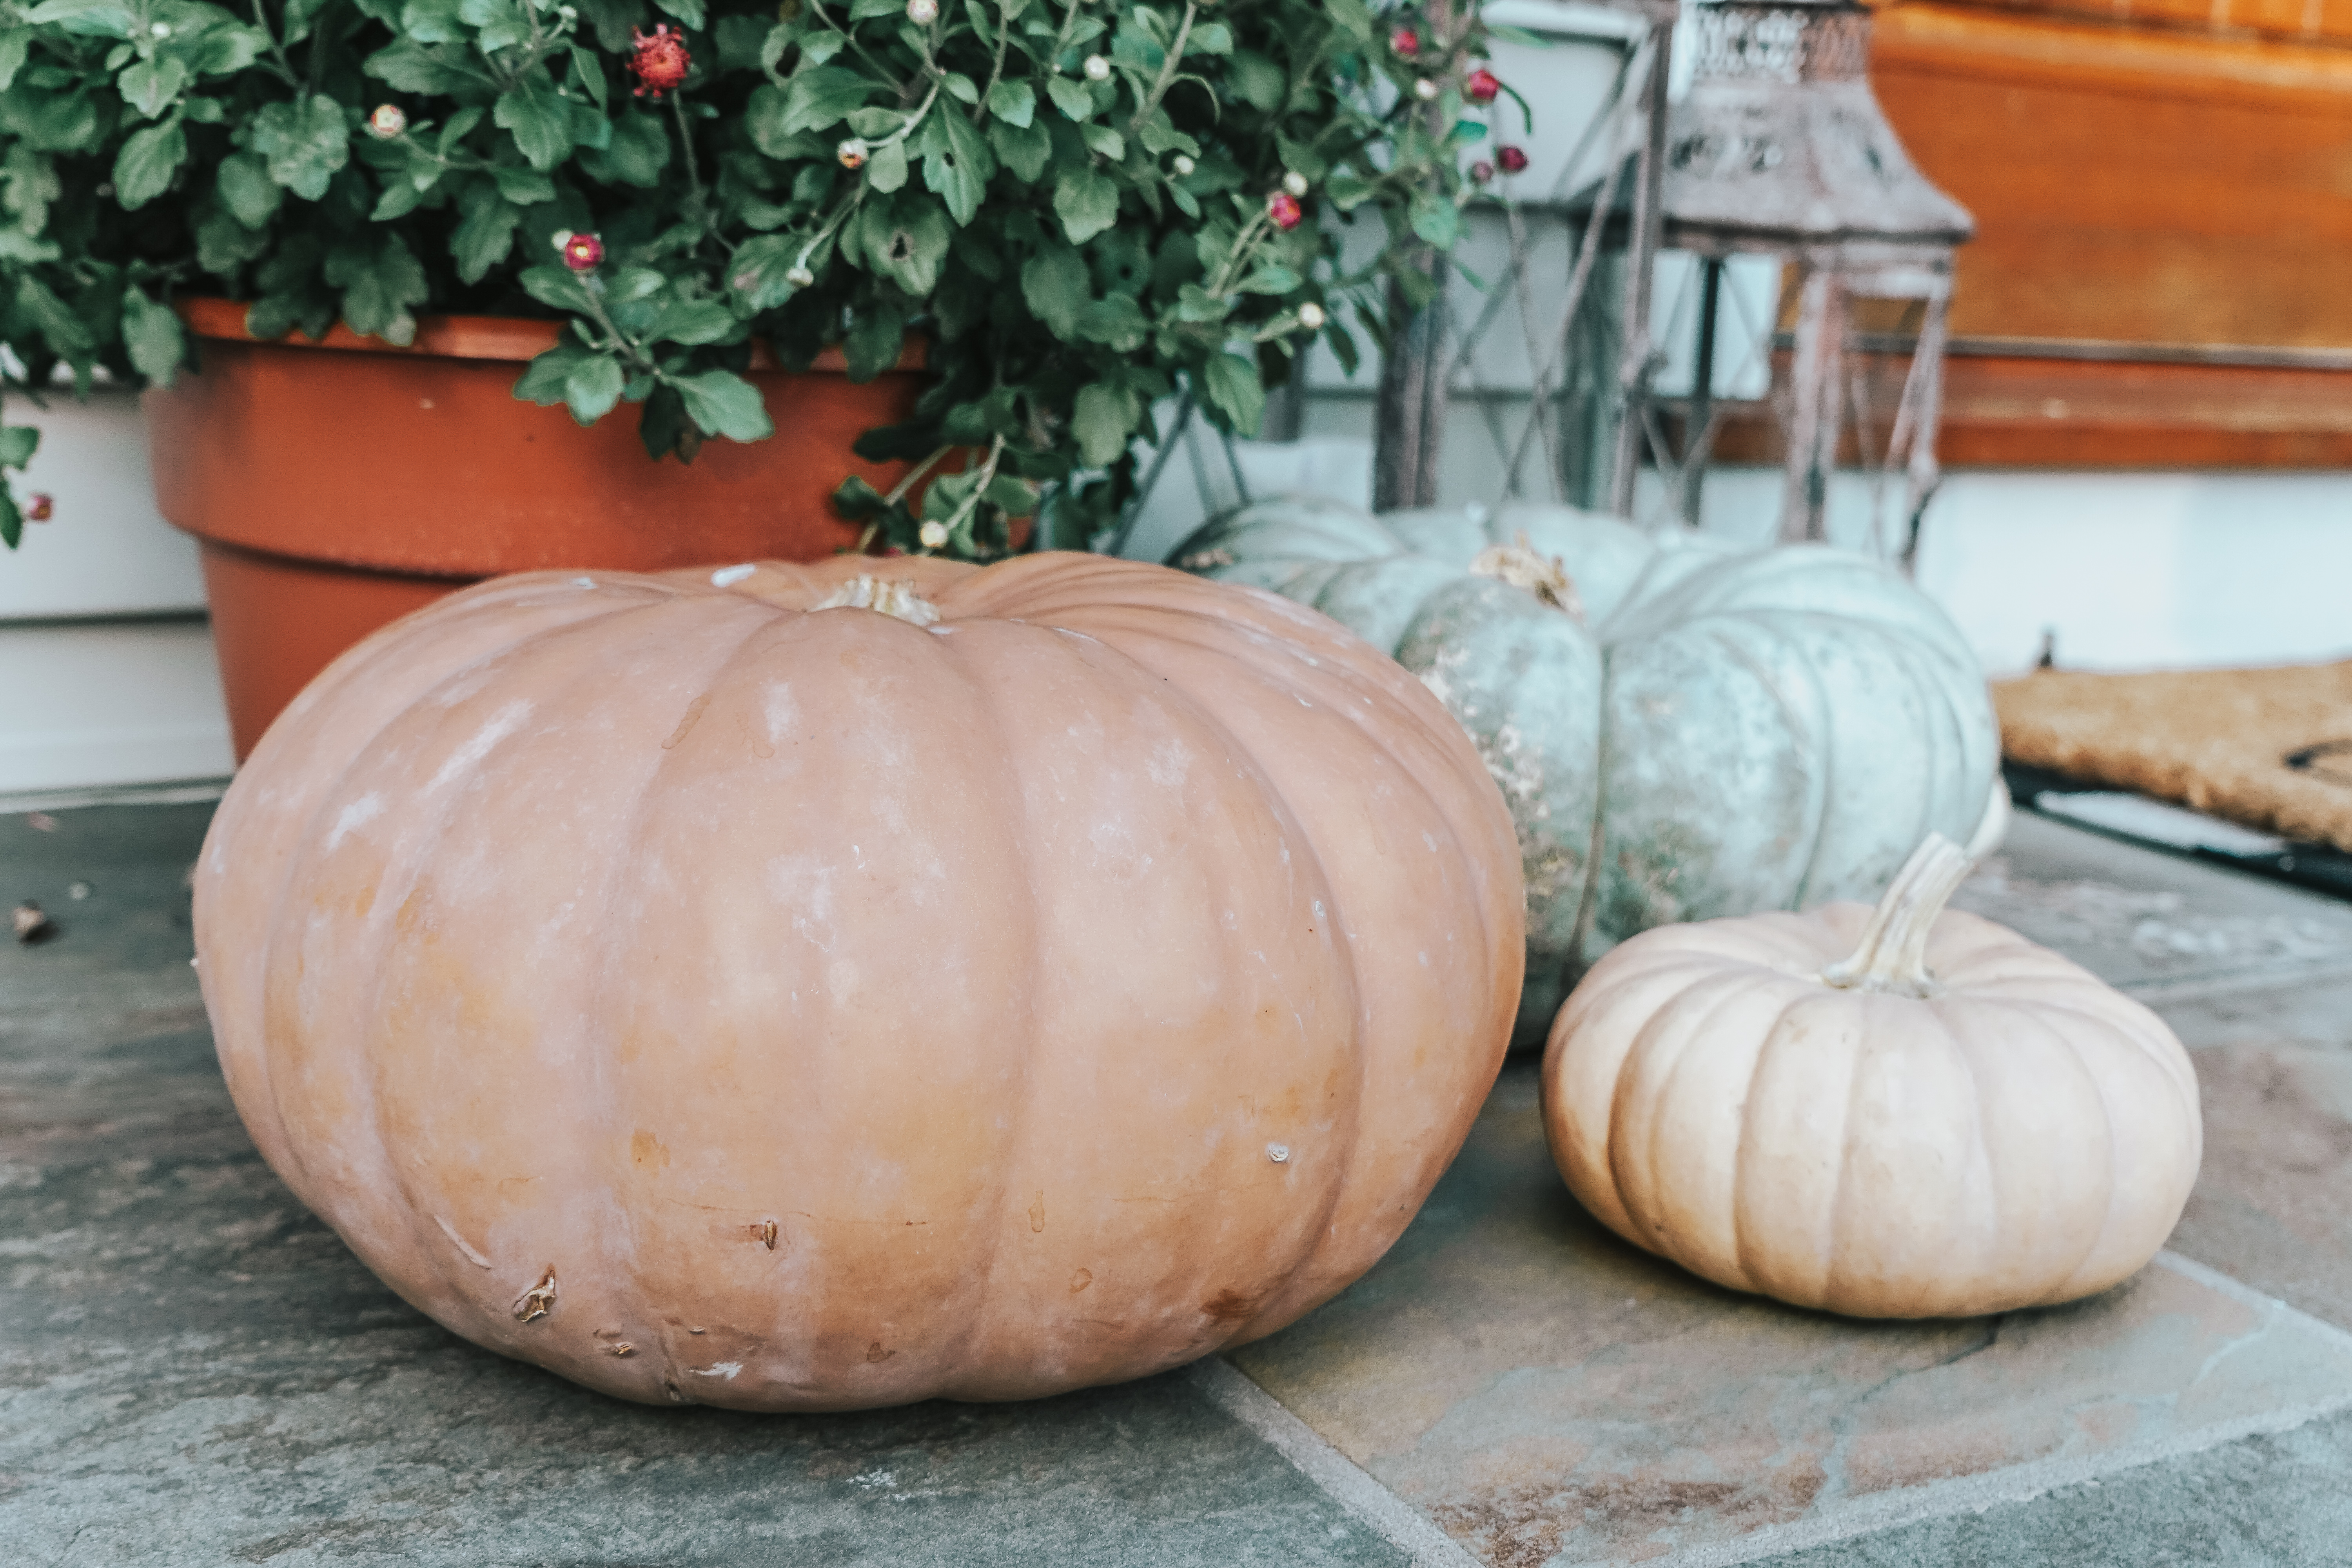 Do you have questions about caring for pumpkins? These pumpkin tips and tricks will help you choose the right pumpkin and keep it looking great!